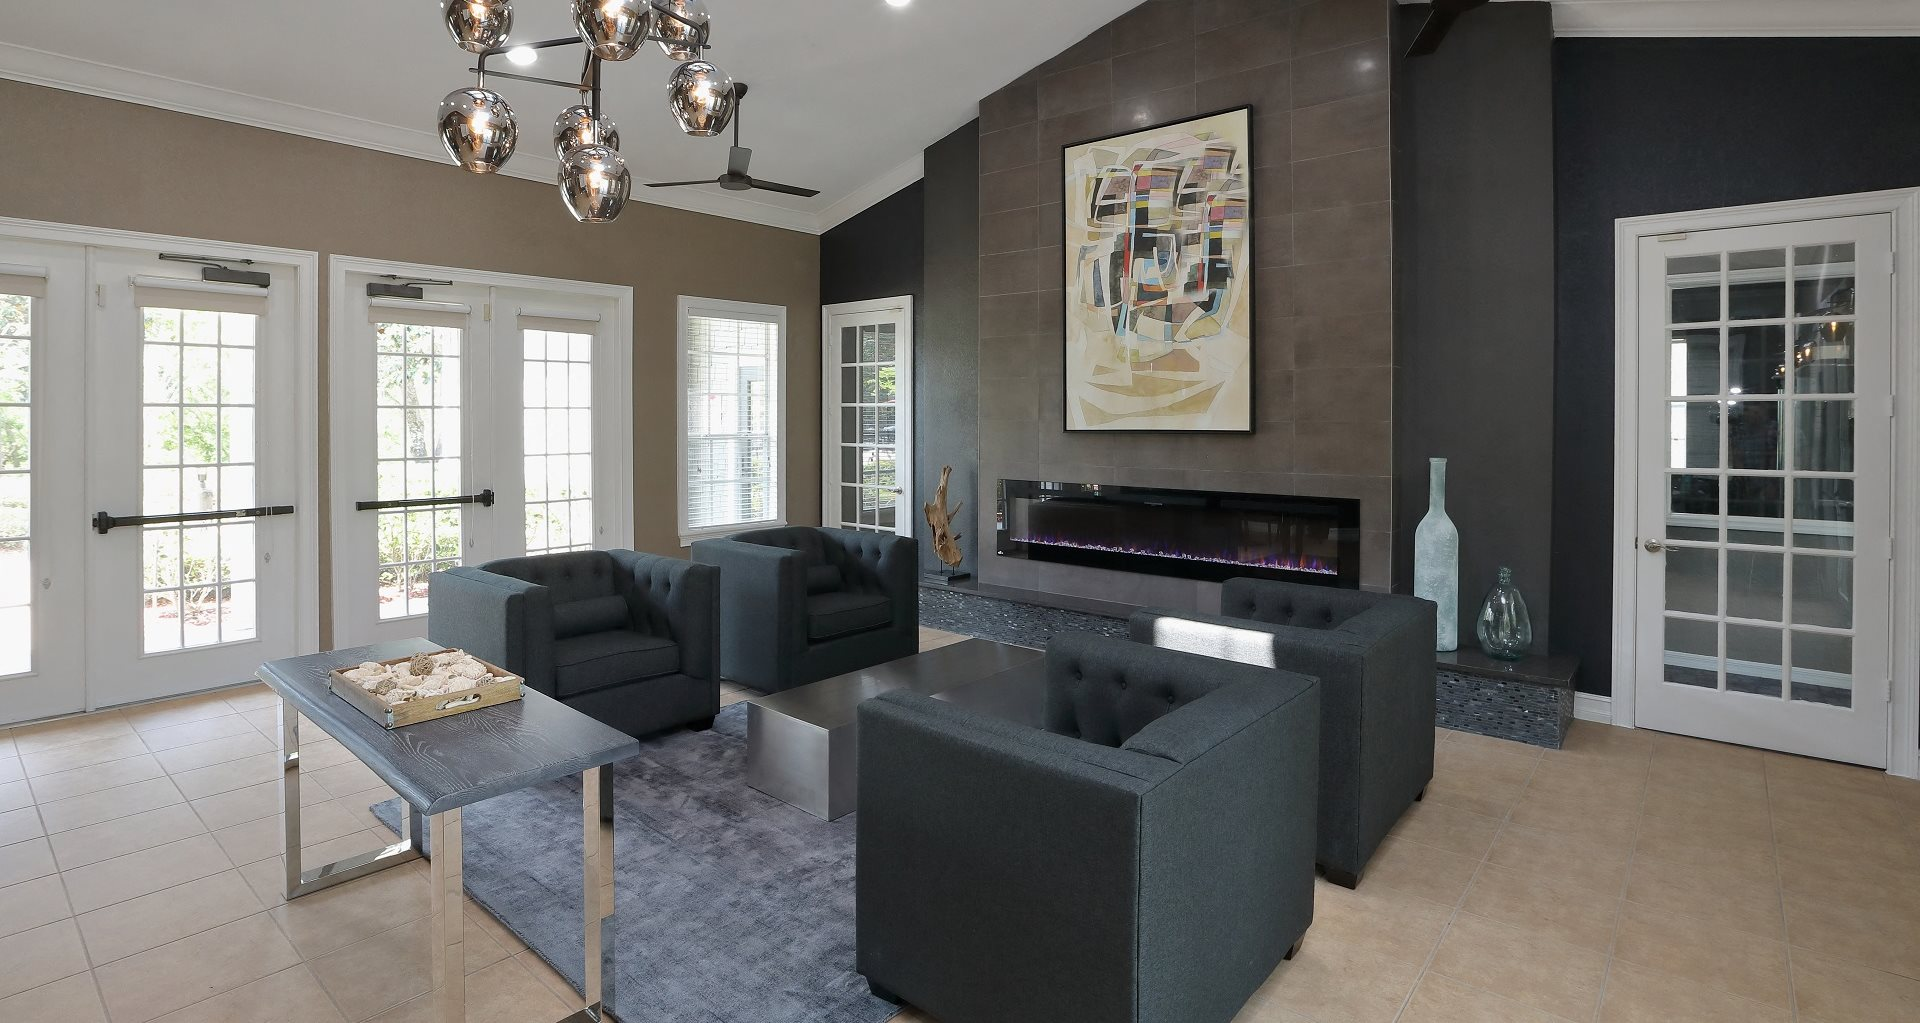 Phenomenal Ponce Harbor Apartments In St Augustine Fl Home Interior And Landscaping Ponolsignezvosmurscom